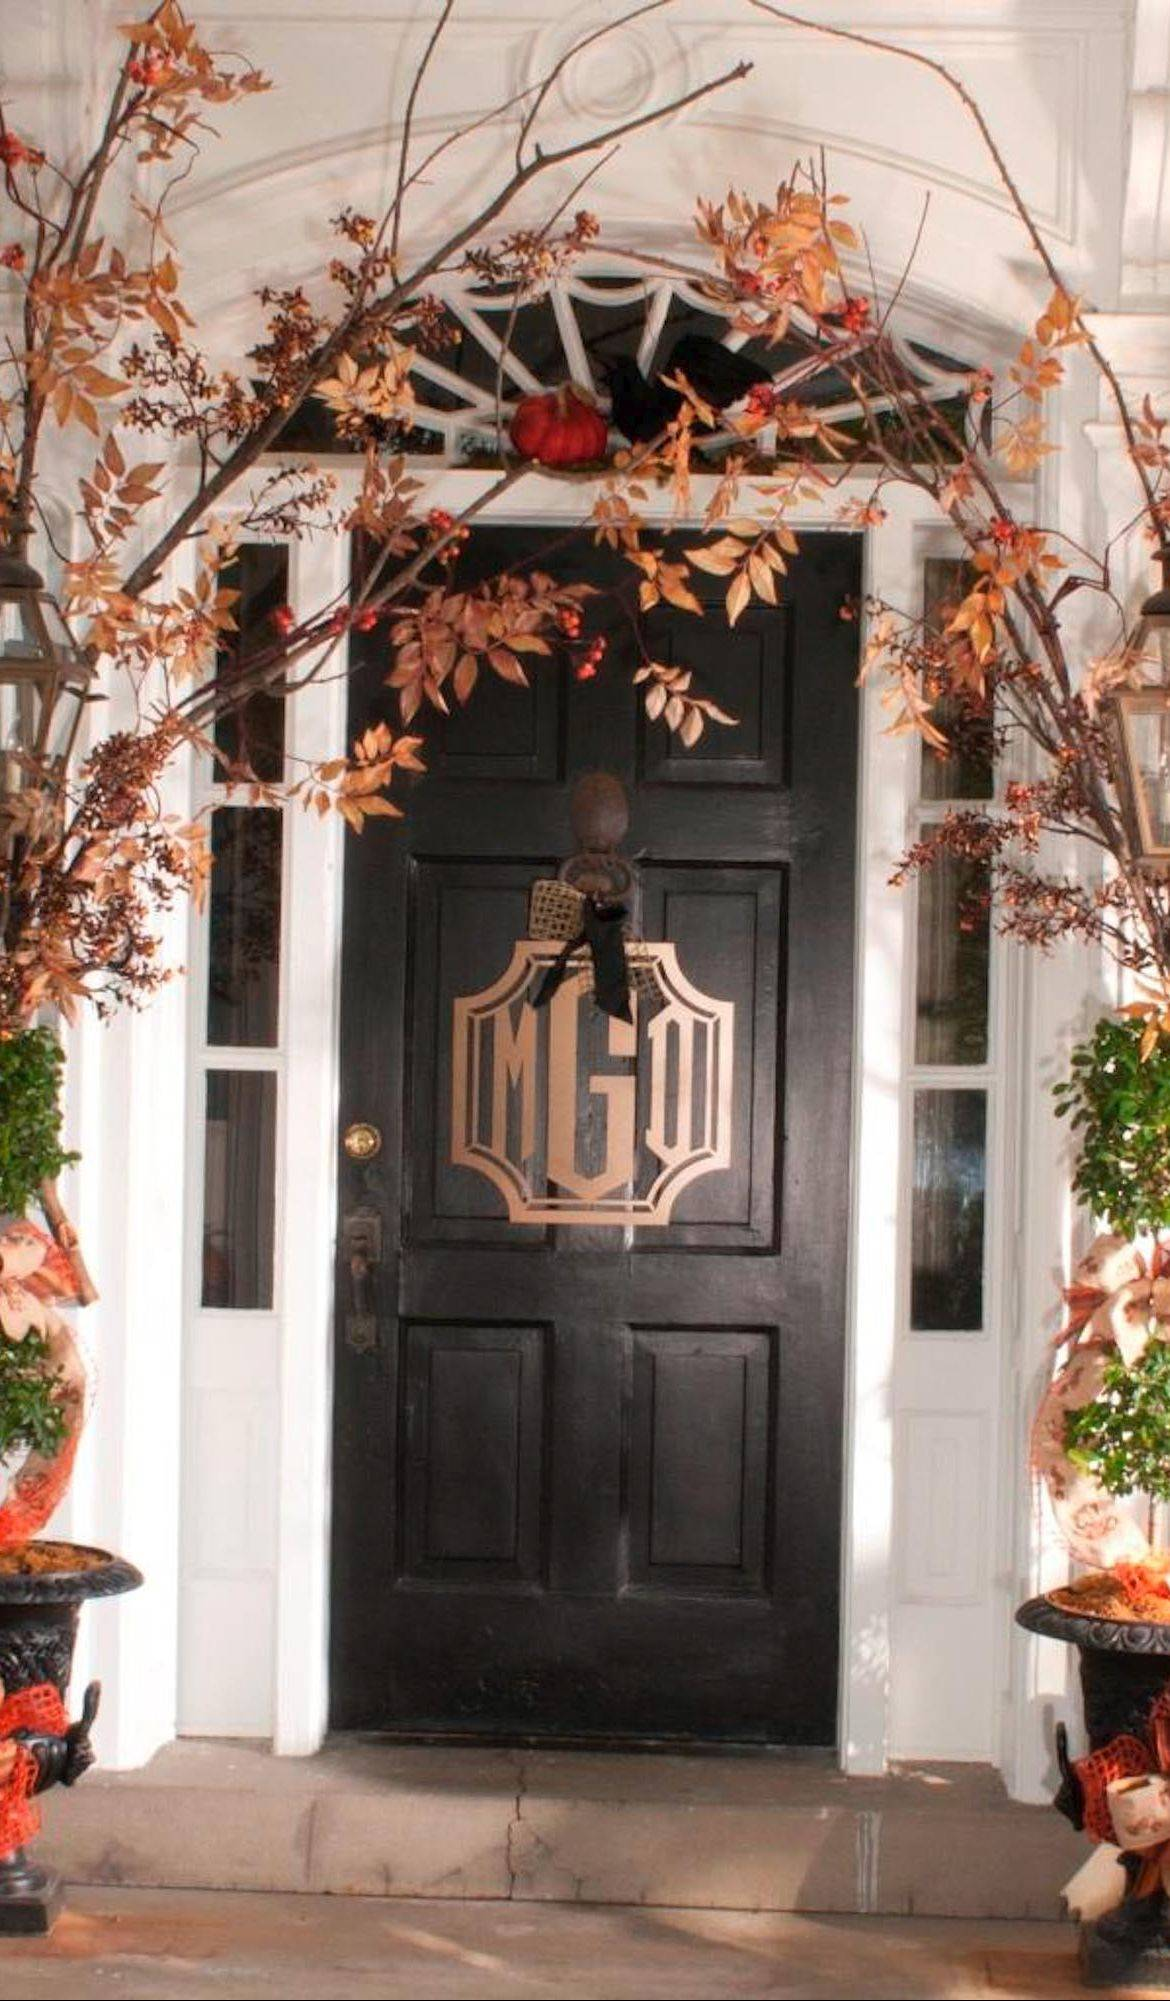 The front of your house is the first thing people see when they visit, so make it welcoming with a few personal touches.